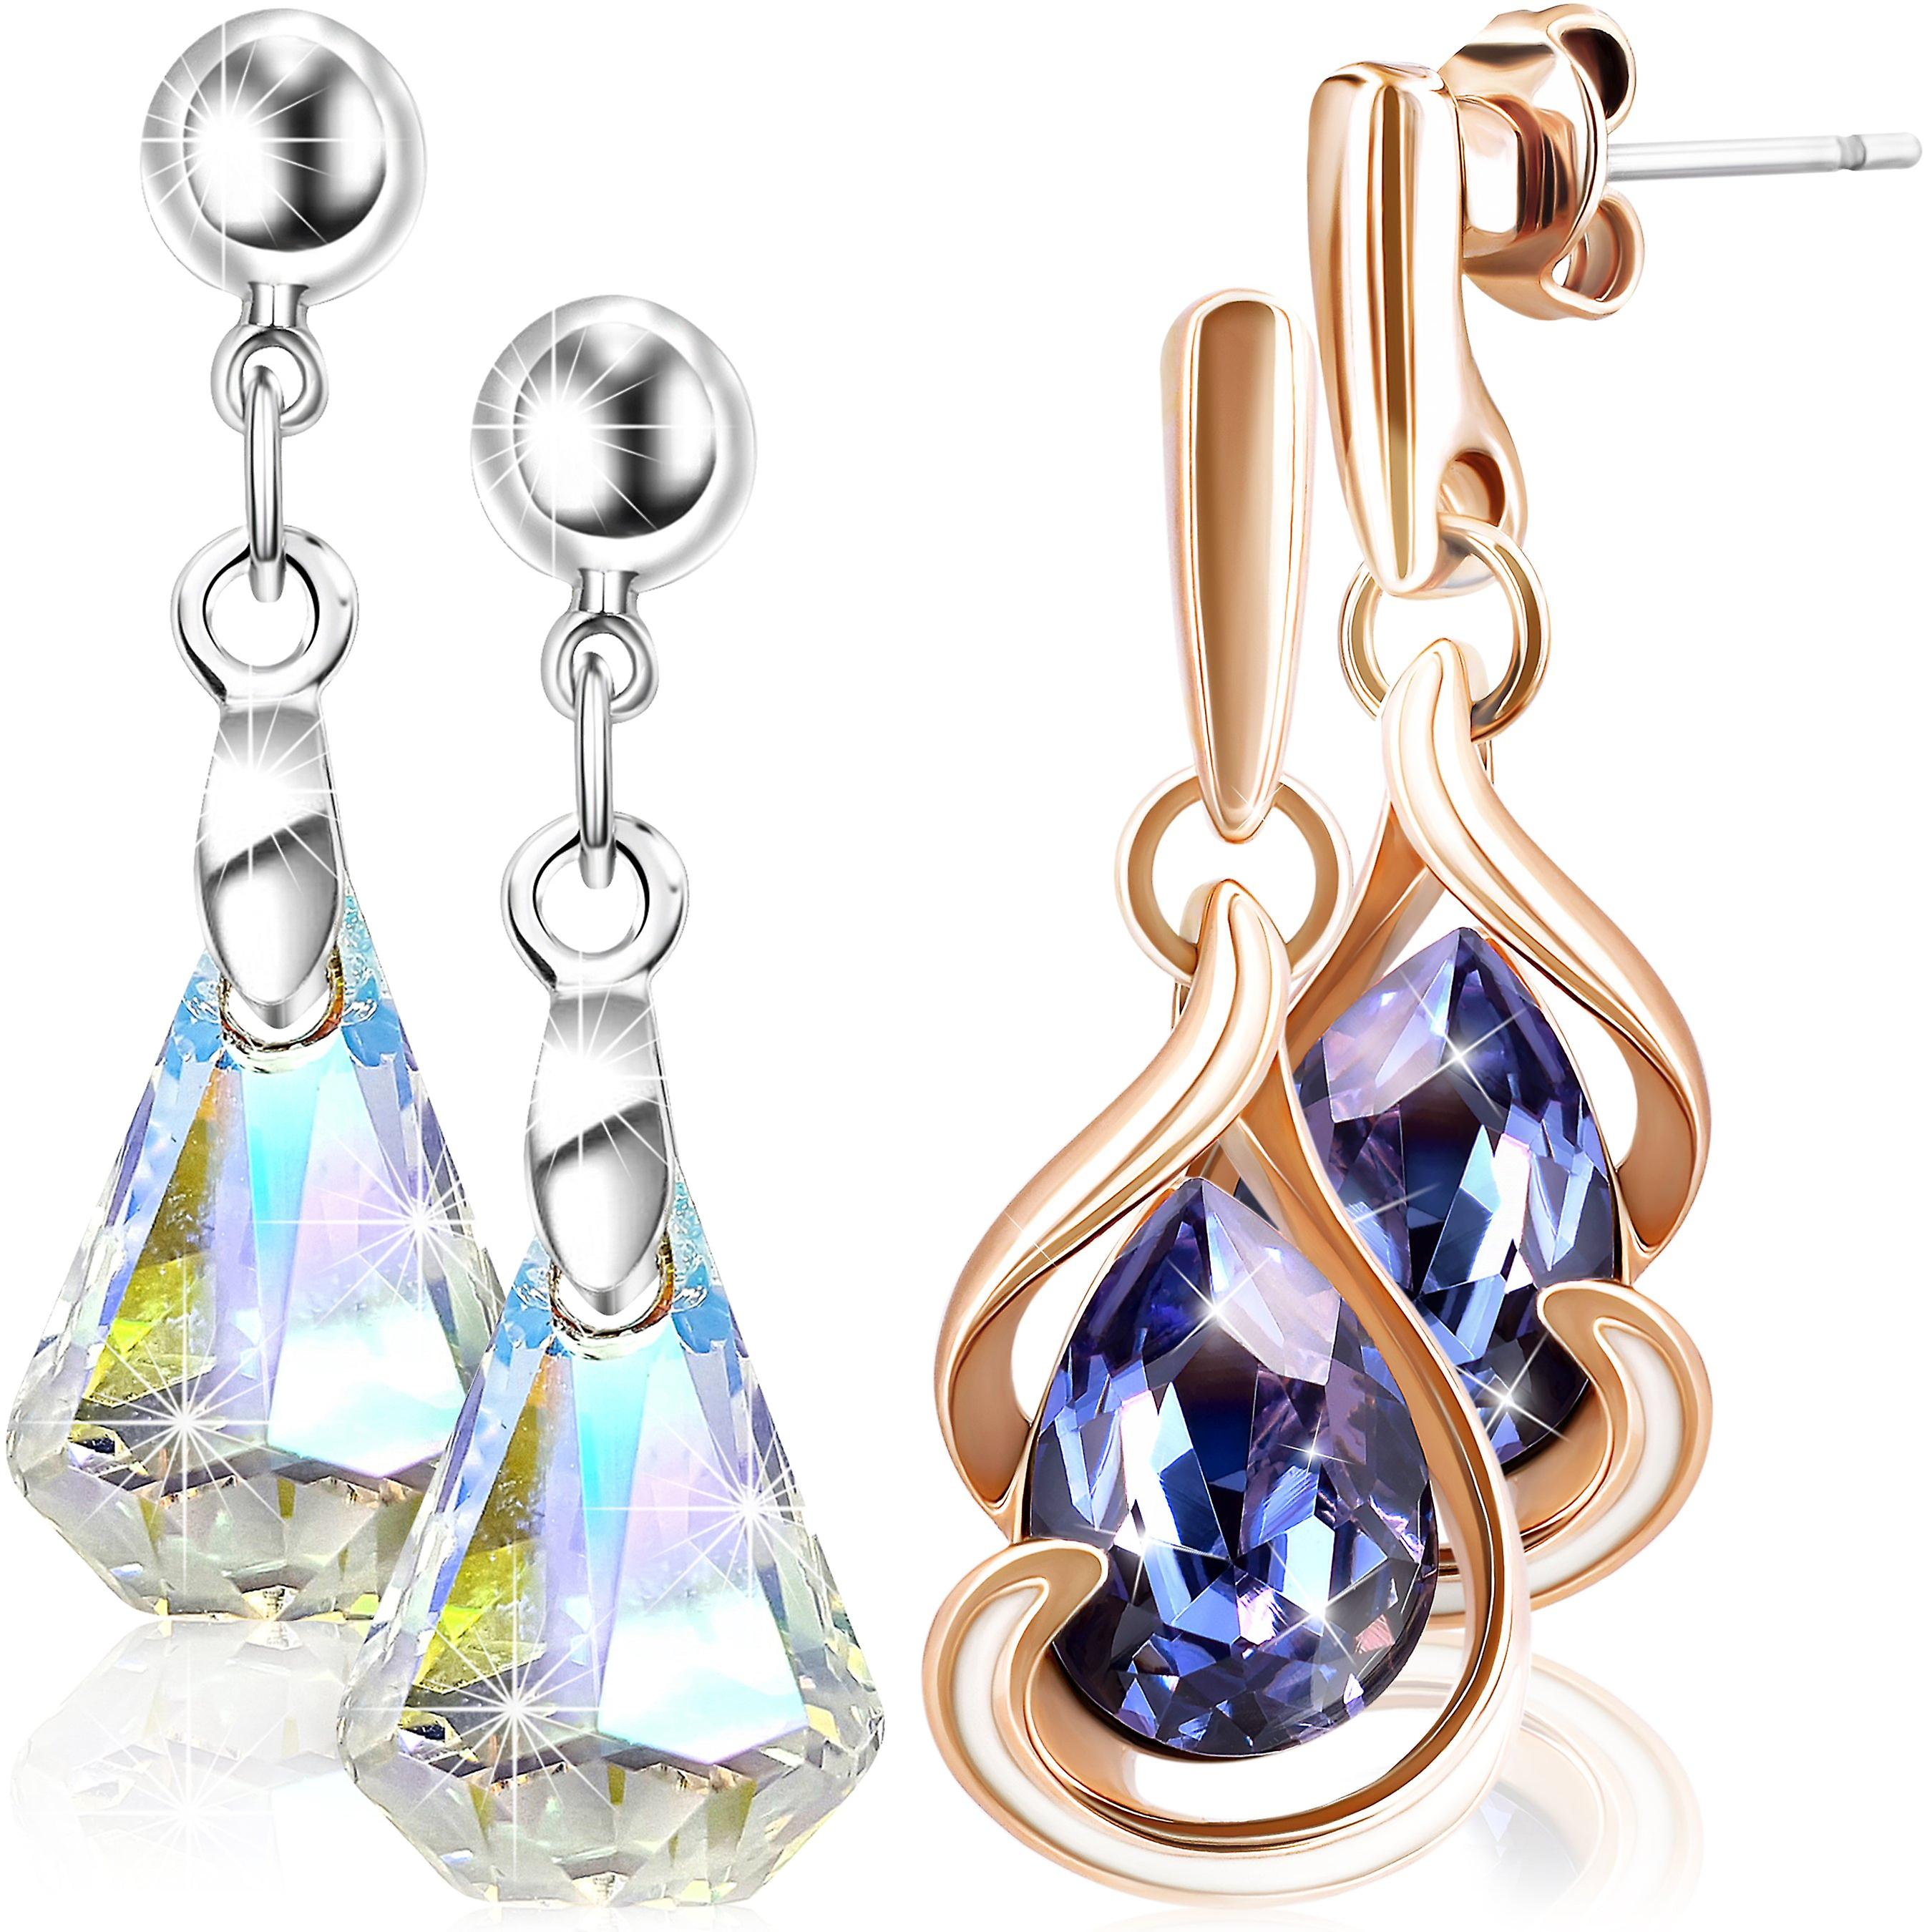 2 pairs of stud earrings for women with swarovski crystal. gold and rhodium plated. by 2splendid. gift box included. eeqz001